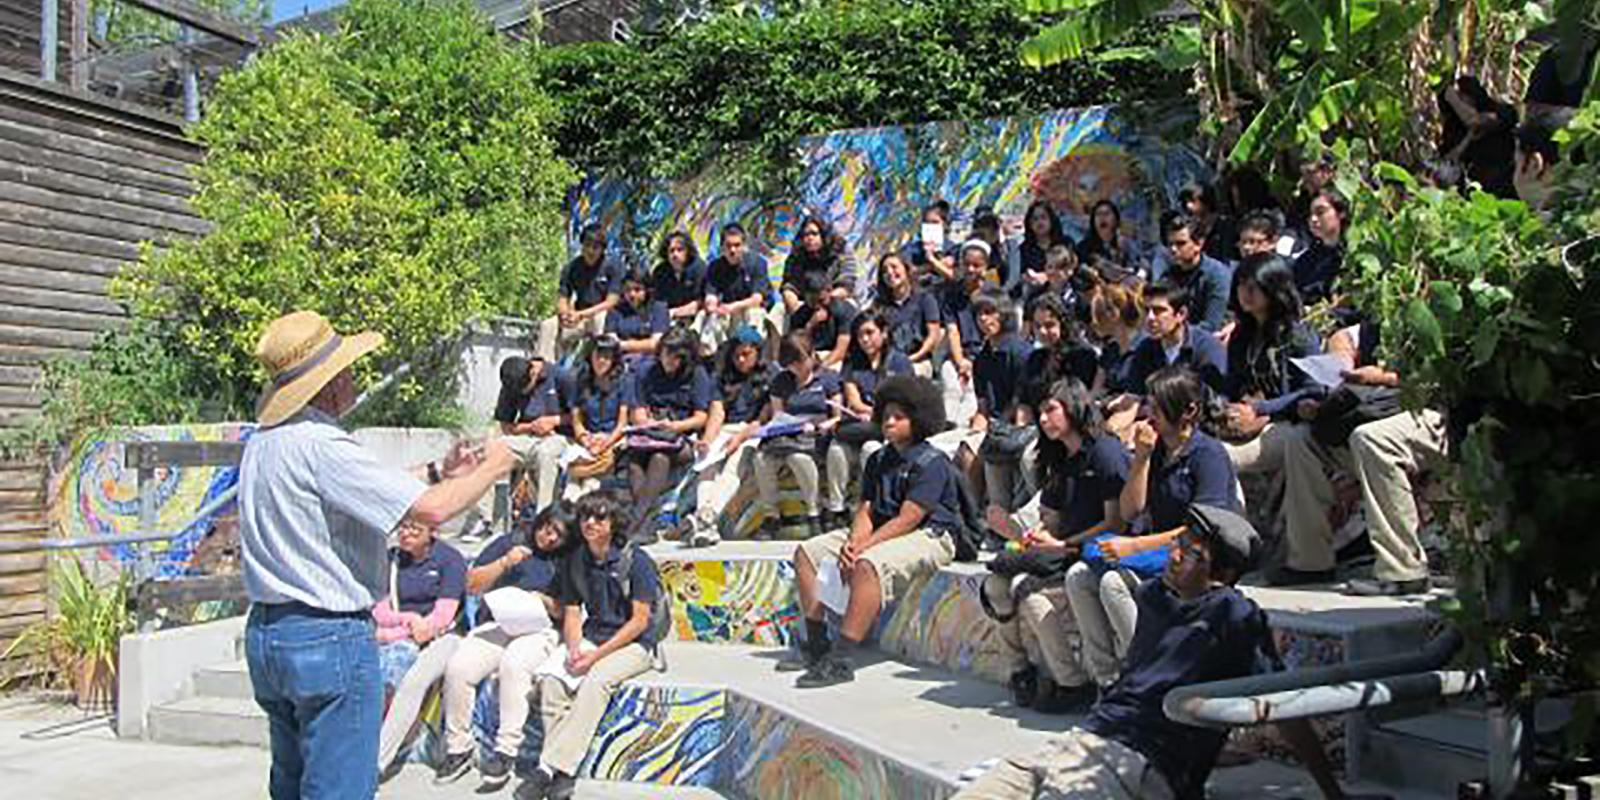 A group of middle school students during a field trip at the Lyle Center